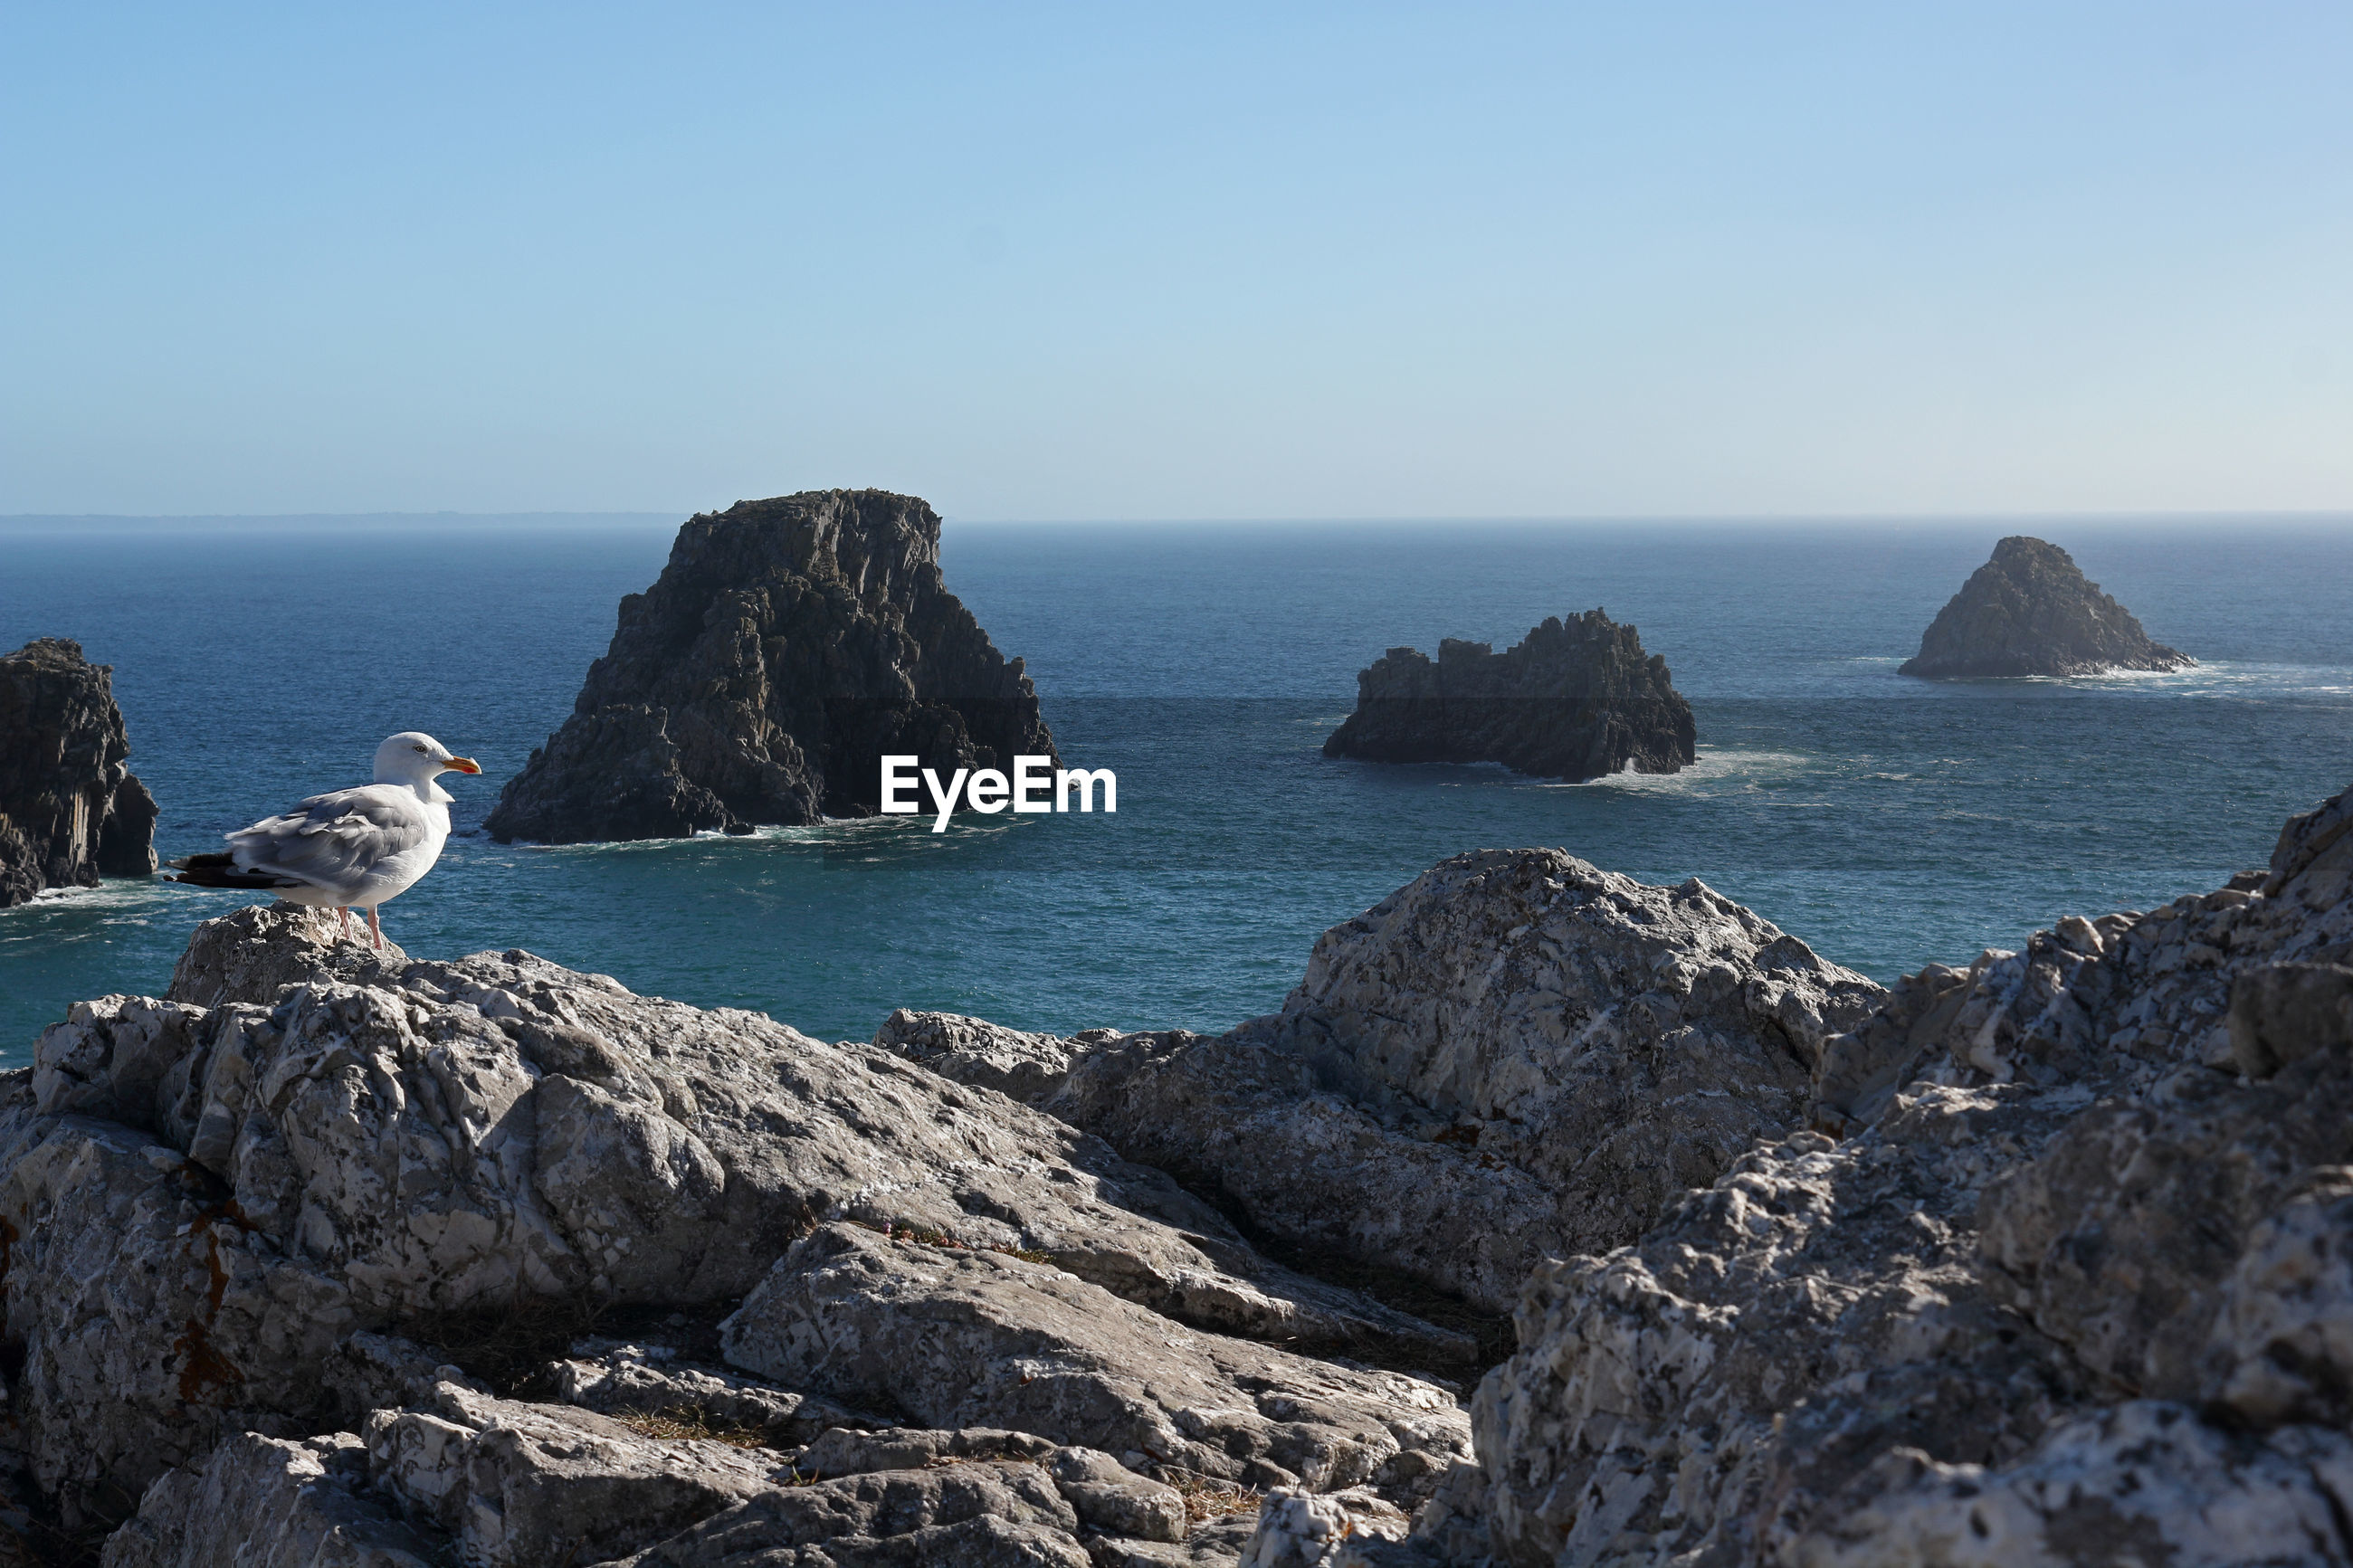 SCENIC VIEW OF SEA AND ROCK FORMATION AGAINST CLEAR SKY